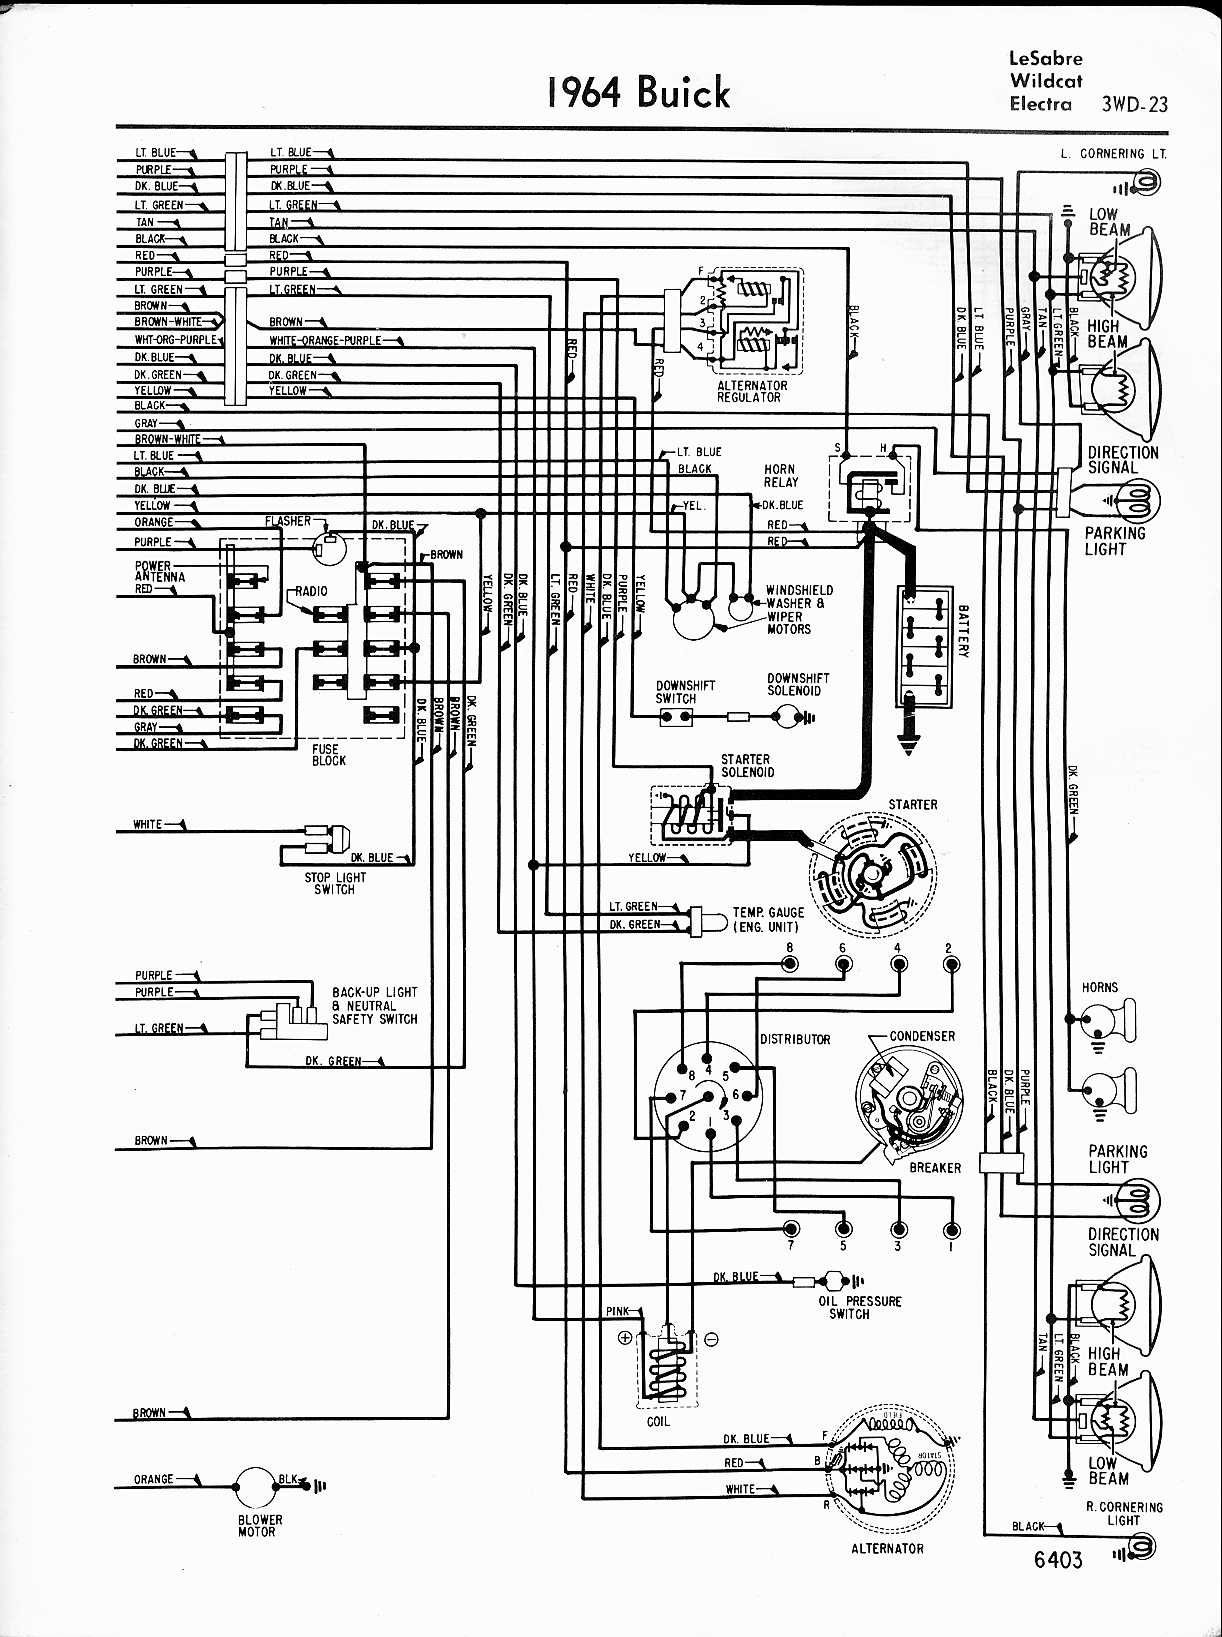 1960 buick wiring diagram wiring diagram ops  1960 buick wiring diagram #7